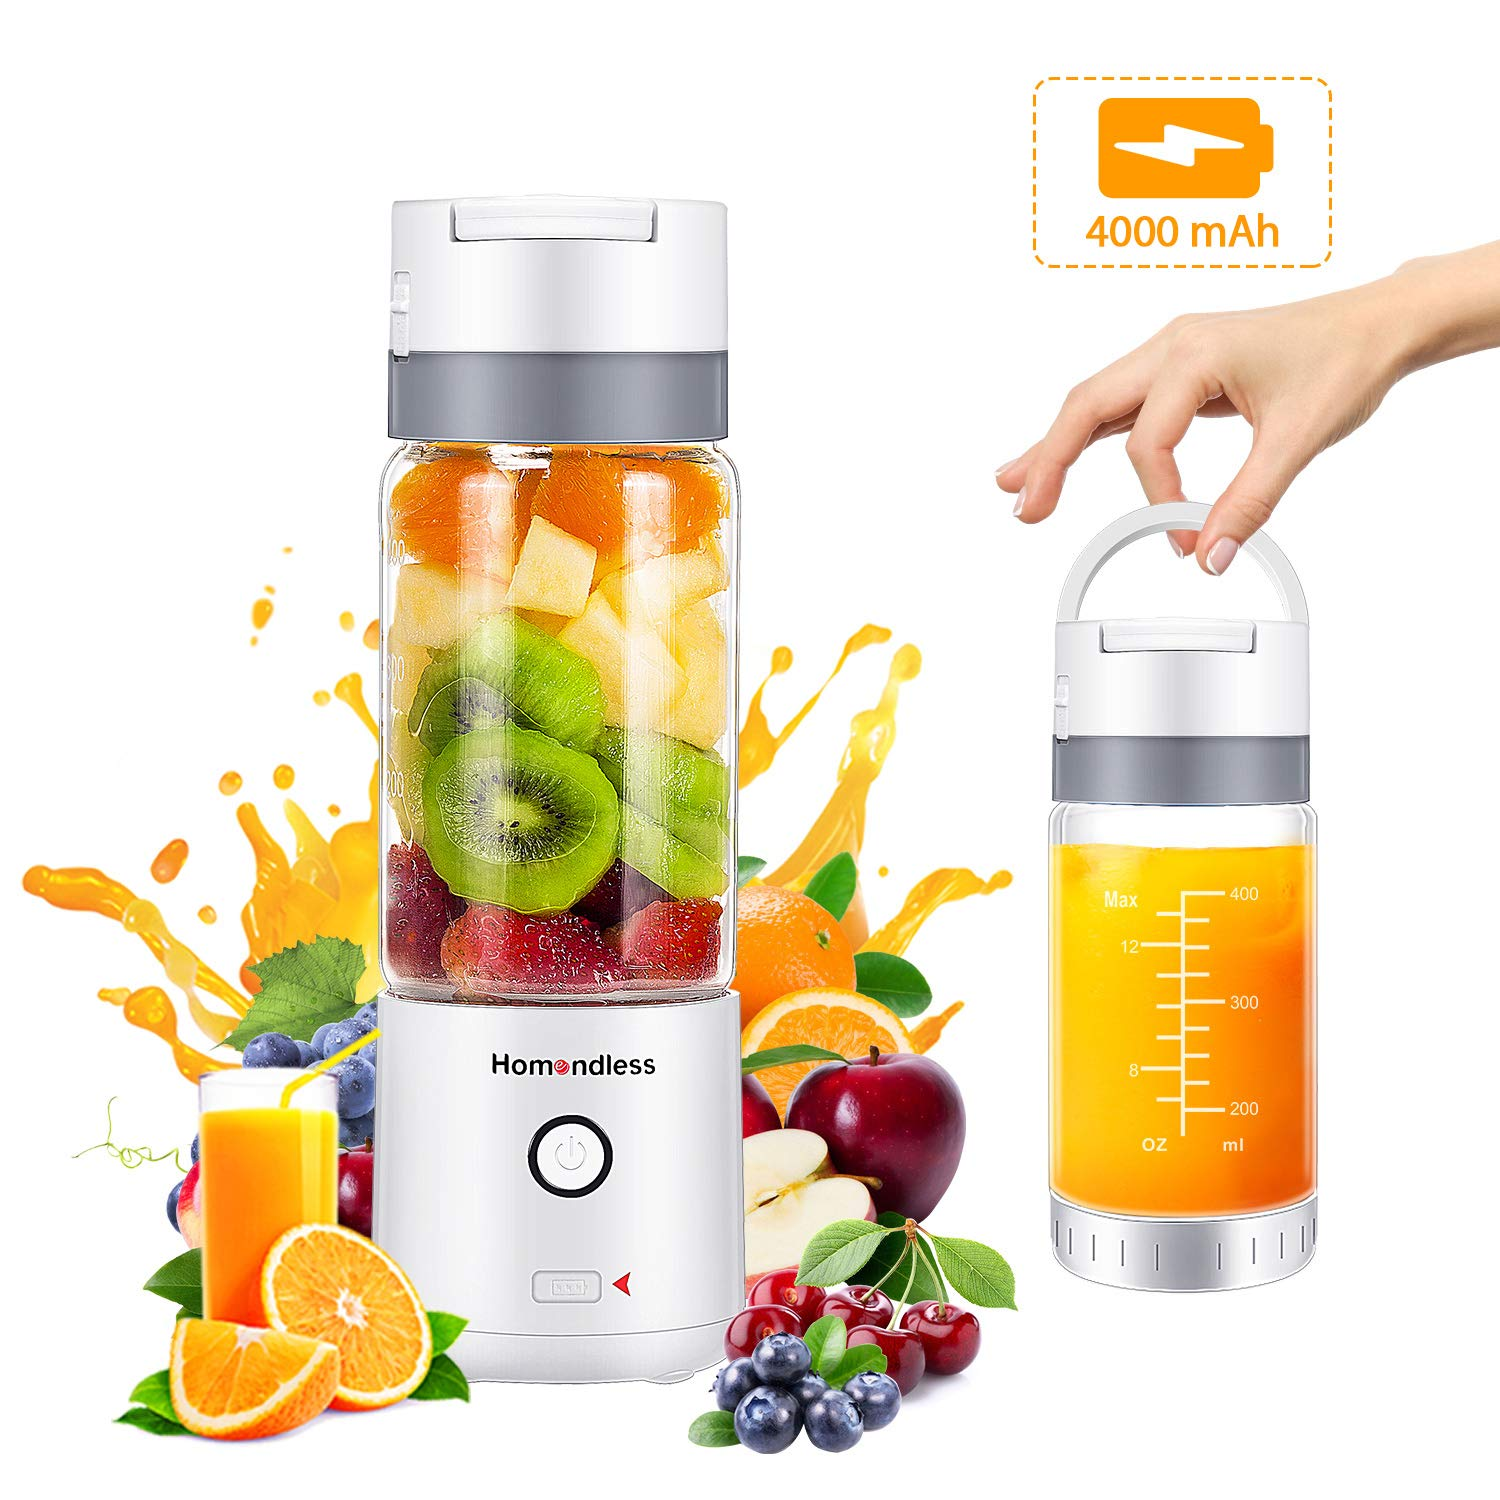 Portable Blender, Personal Smoothie Blender with Vacuum Cap, 4000 mAh Rechargeable Batteries 7.4V Strong Power, 14oz Glass Cup, 4 Blades Juicer Mixer for Office/Gym/Outdoors/Travel (FDA Certificated) by Homendless